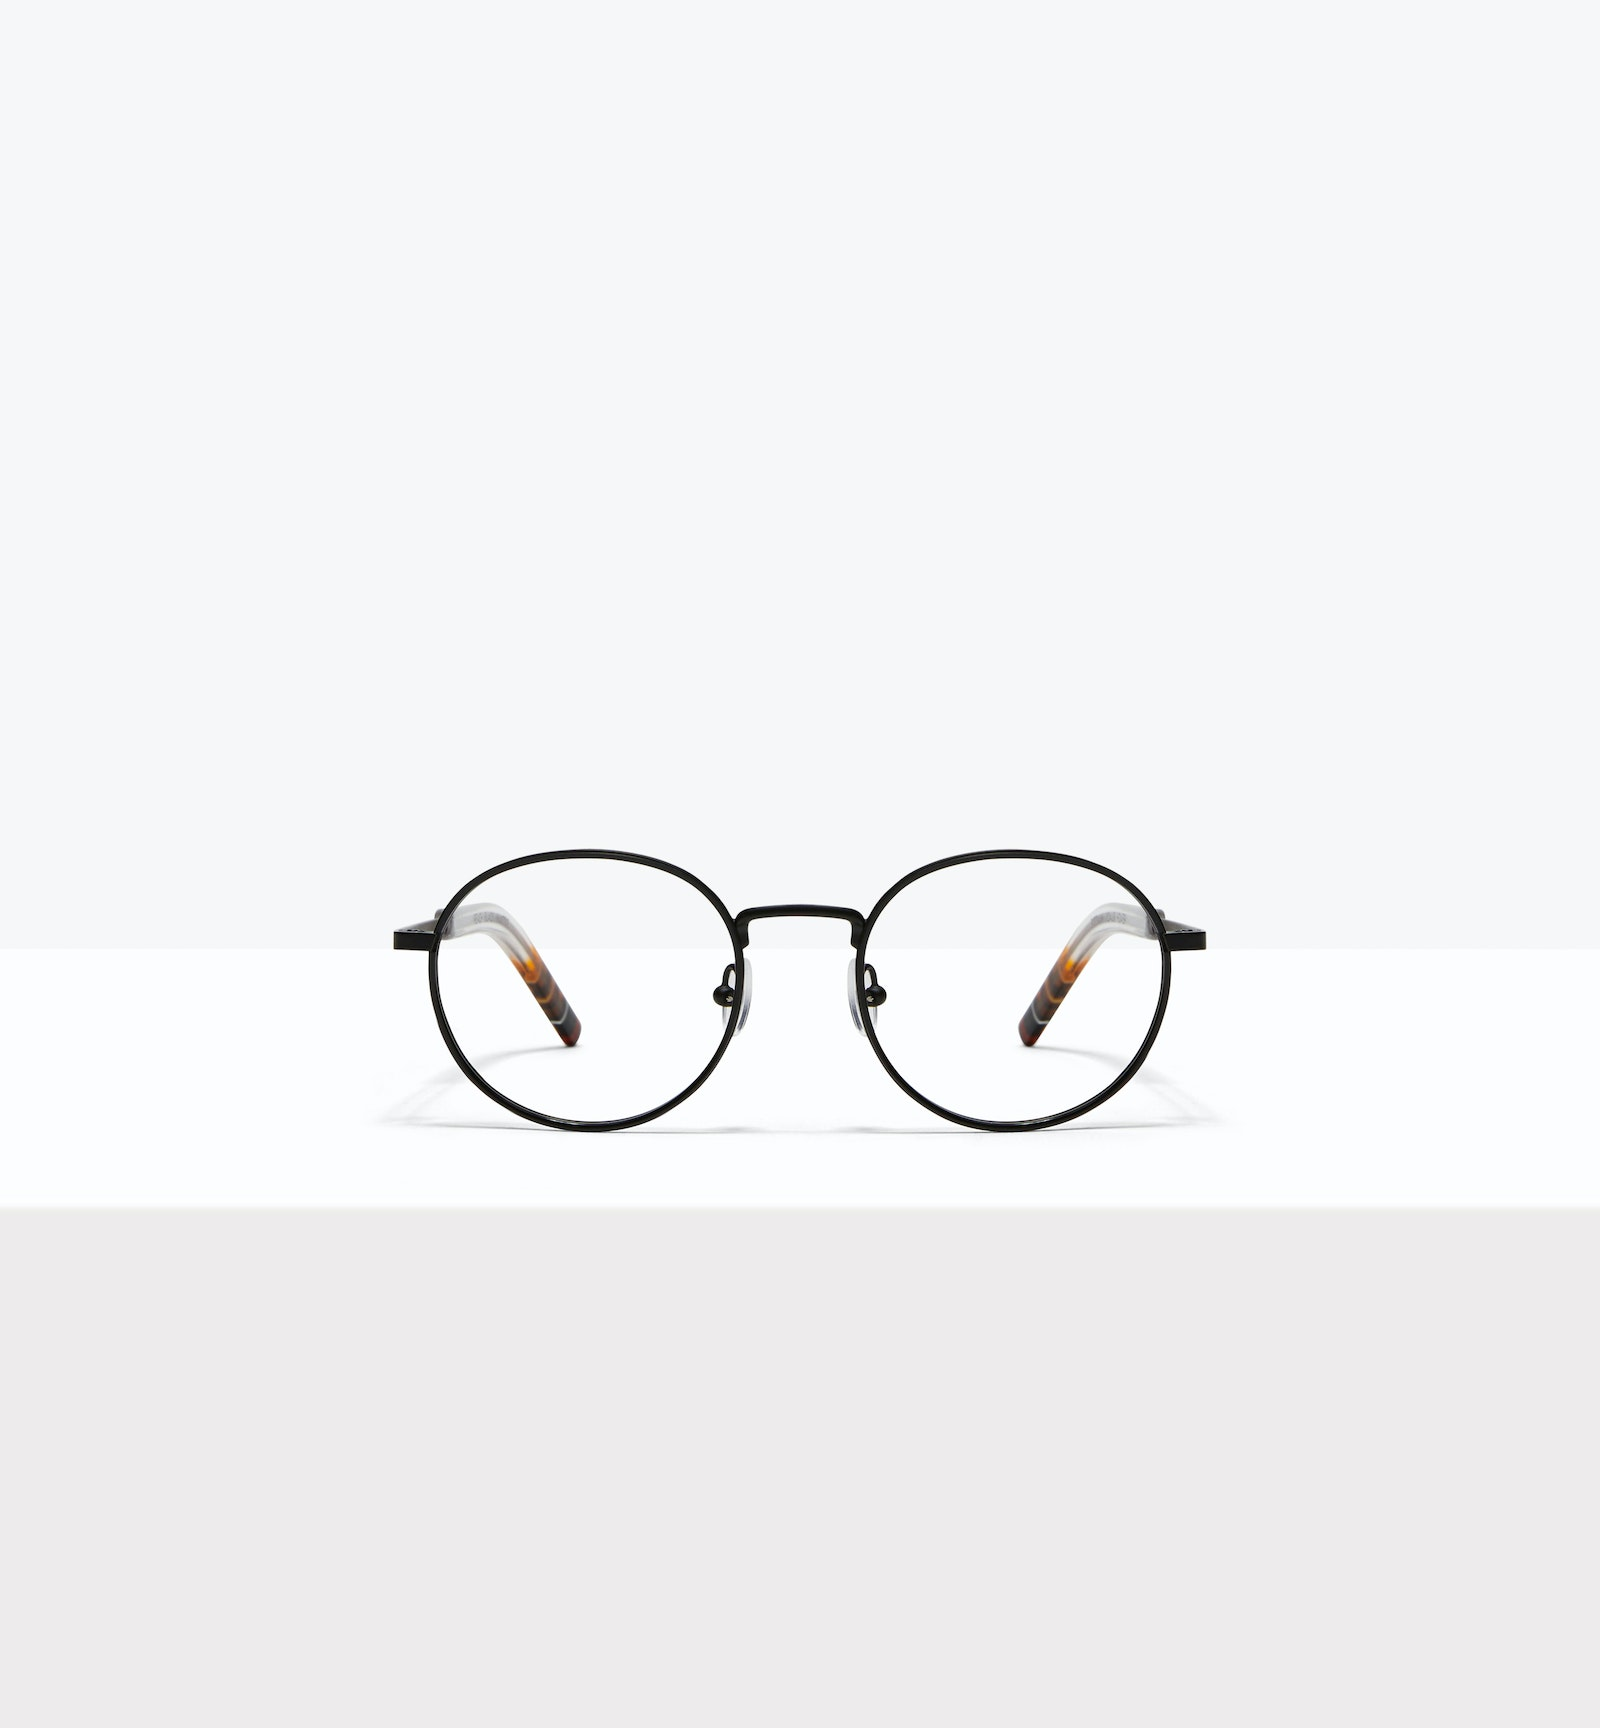 Affordable Fashion Glasses Round Eyeglasses Men Reach Matte Black